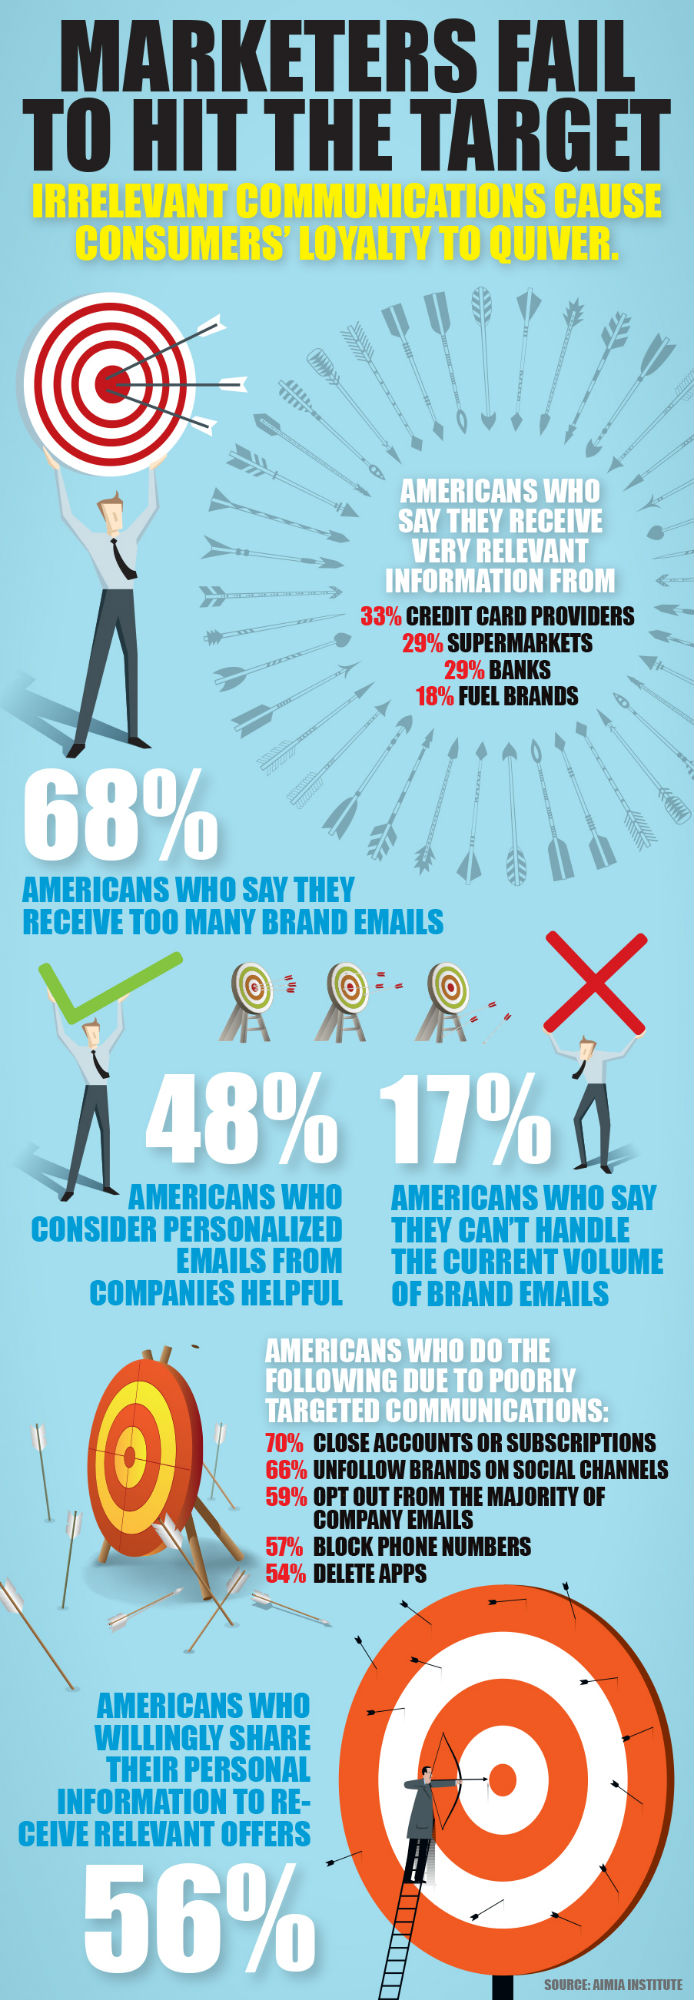 infographic-marketers-miss-the-target